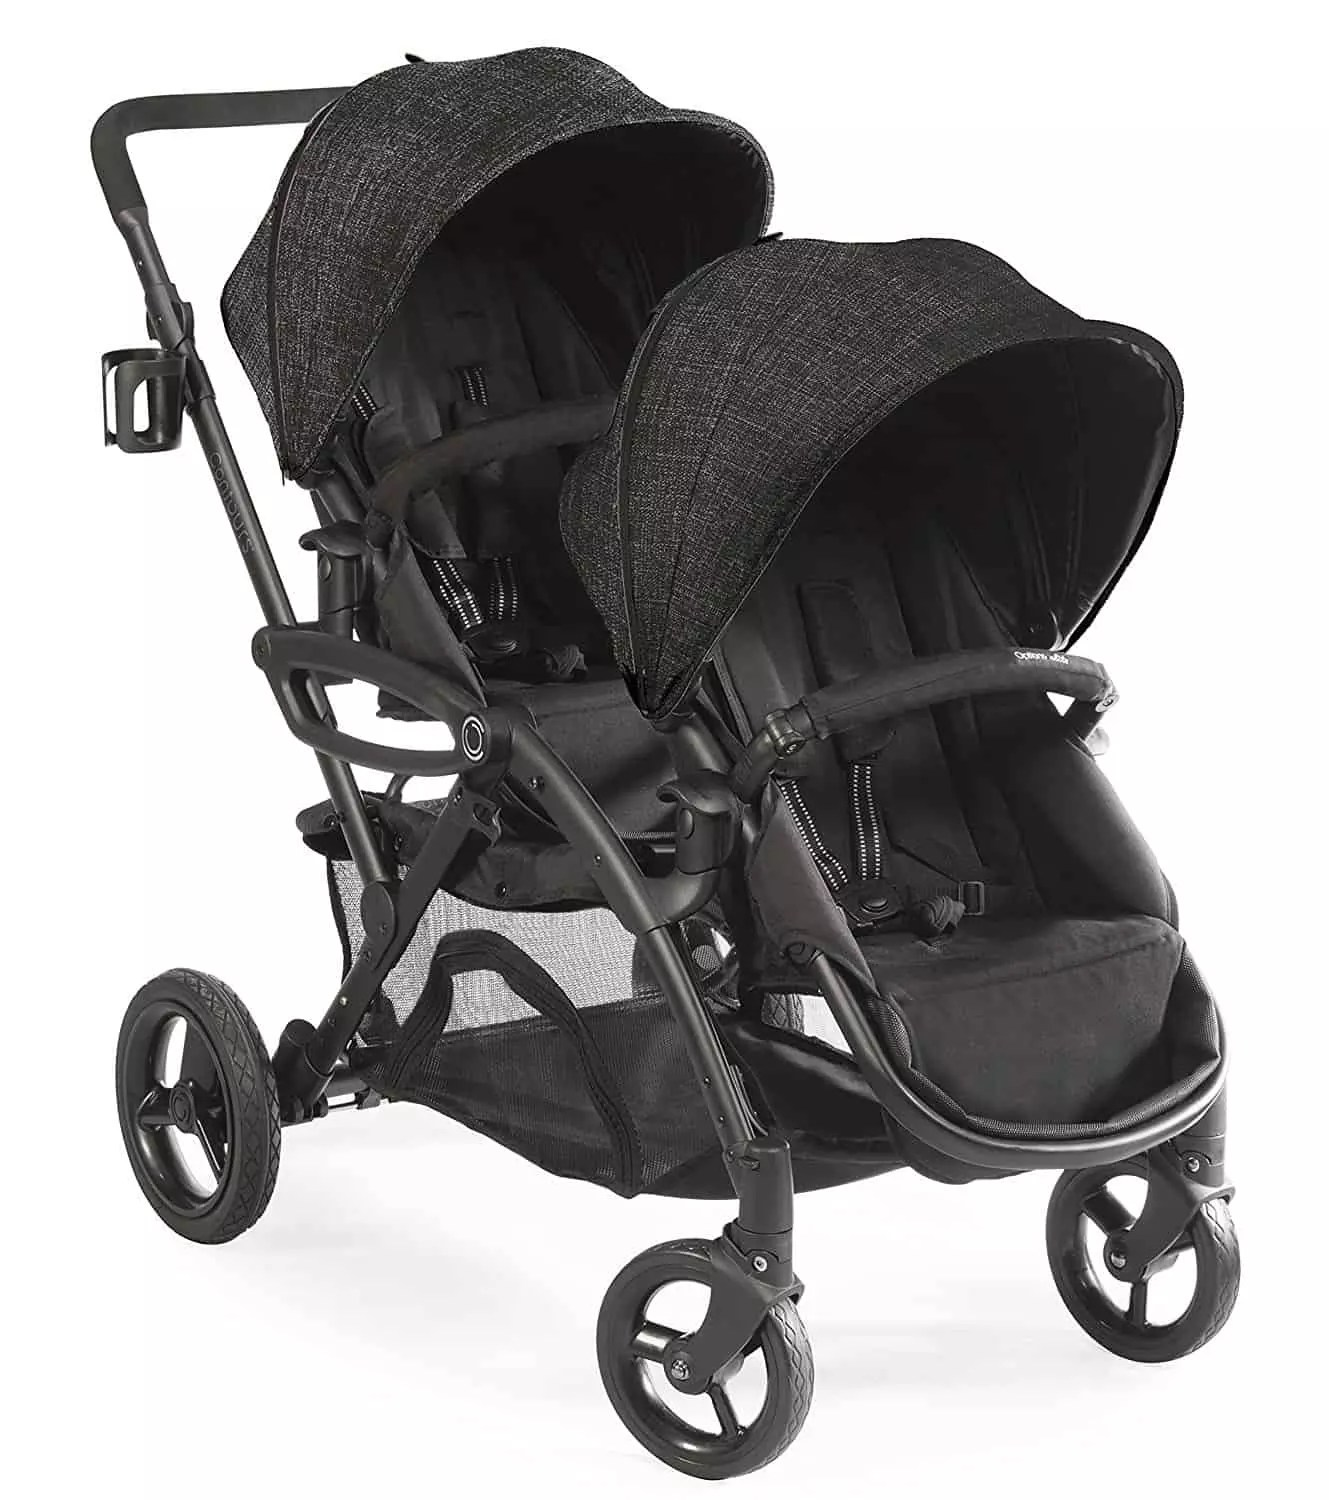 Combi Double Stroller Side By Side The Best Double Stroller Y Baby Bargains